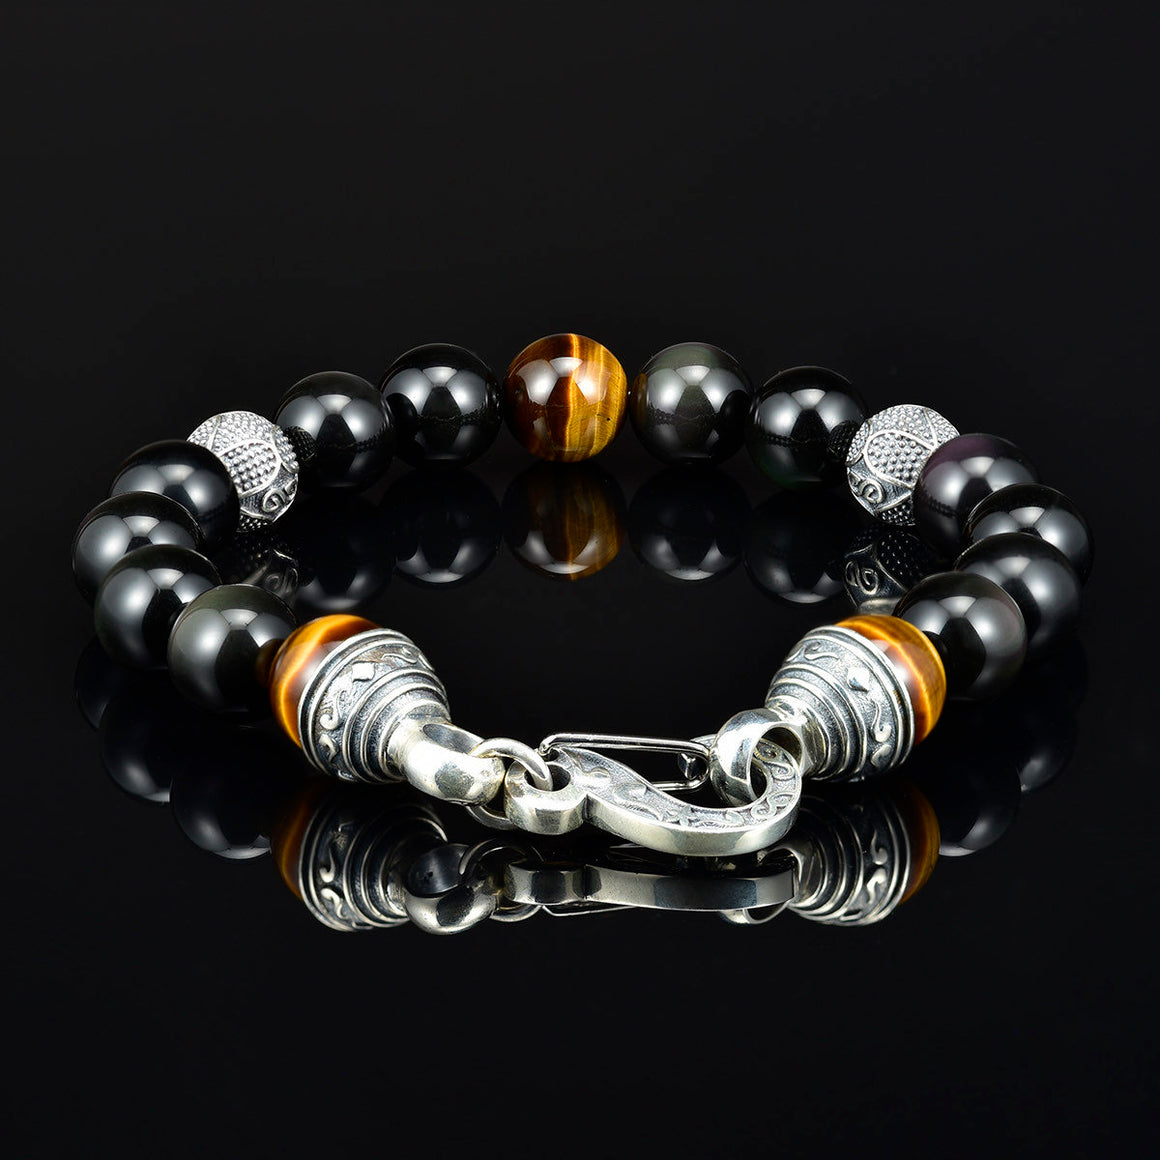 10mm Mens Beaded Bracelet Black Onyx Silver Lobster Claw Clasp